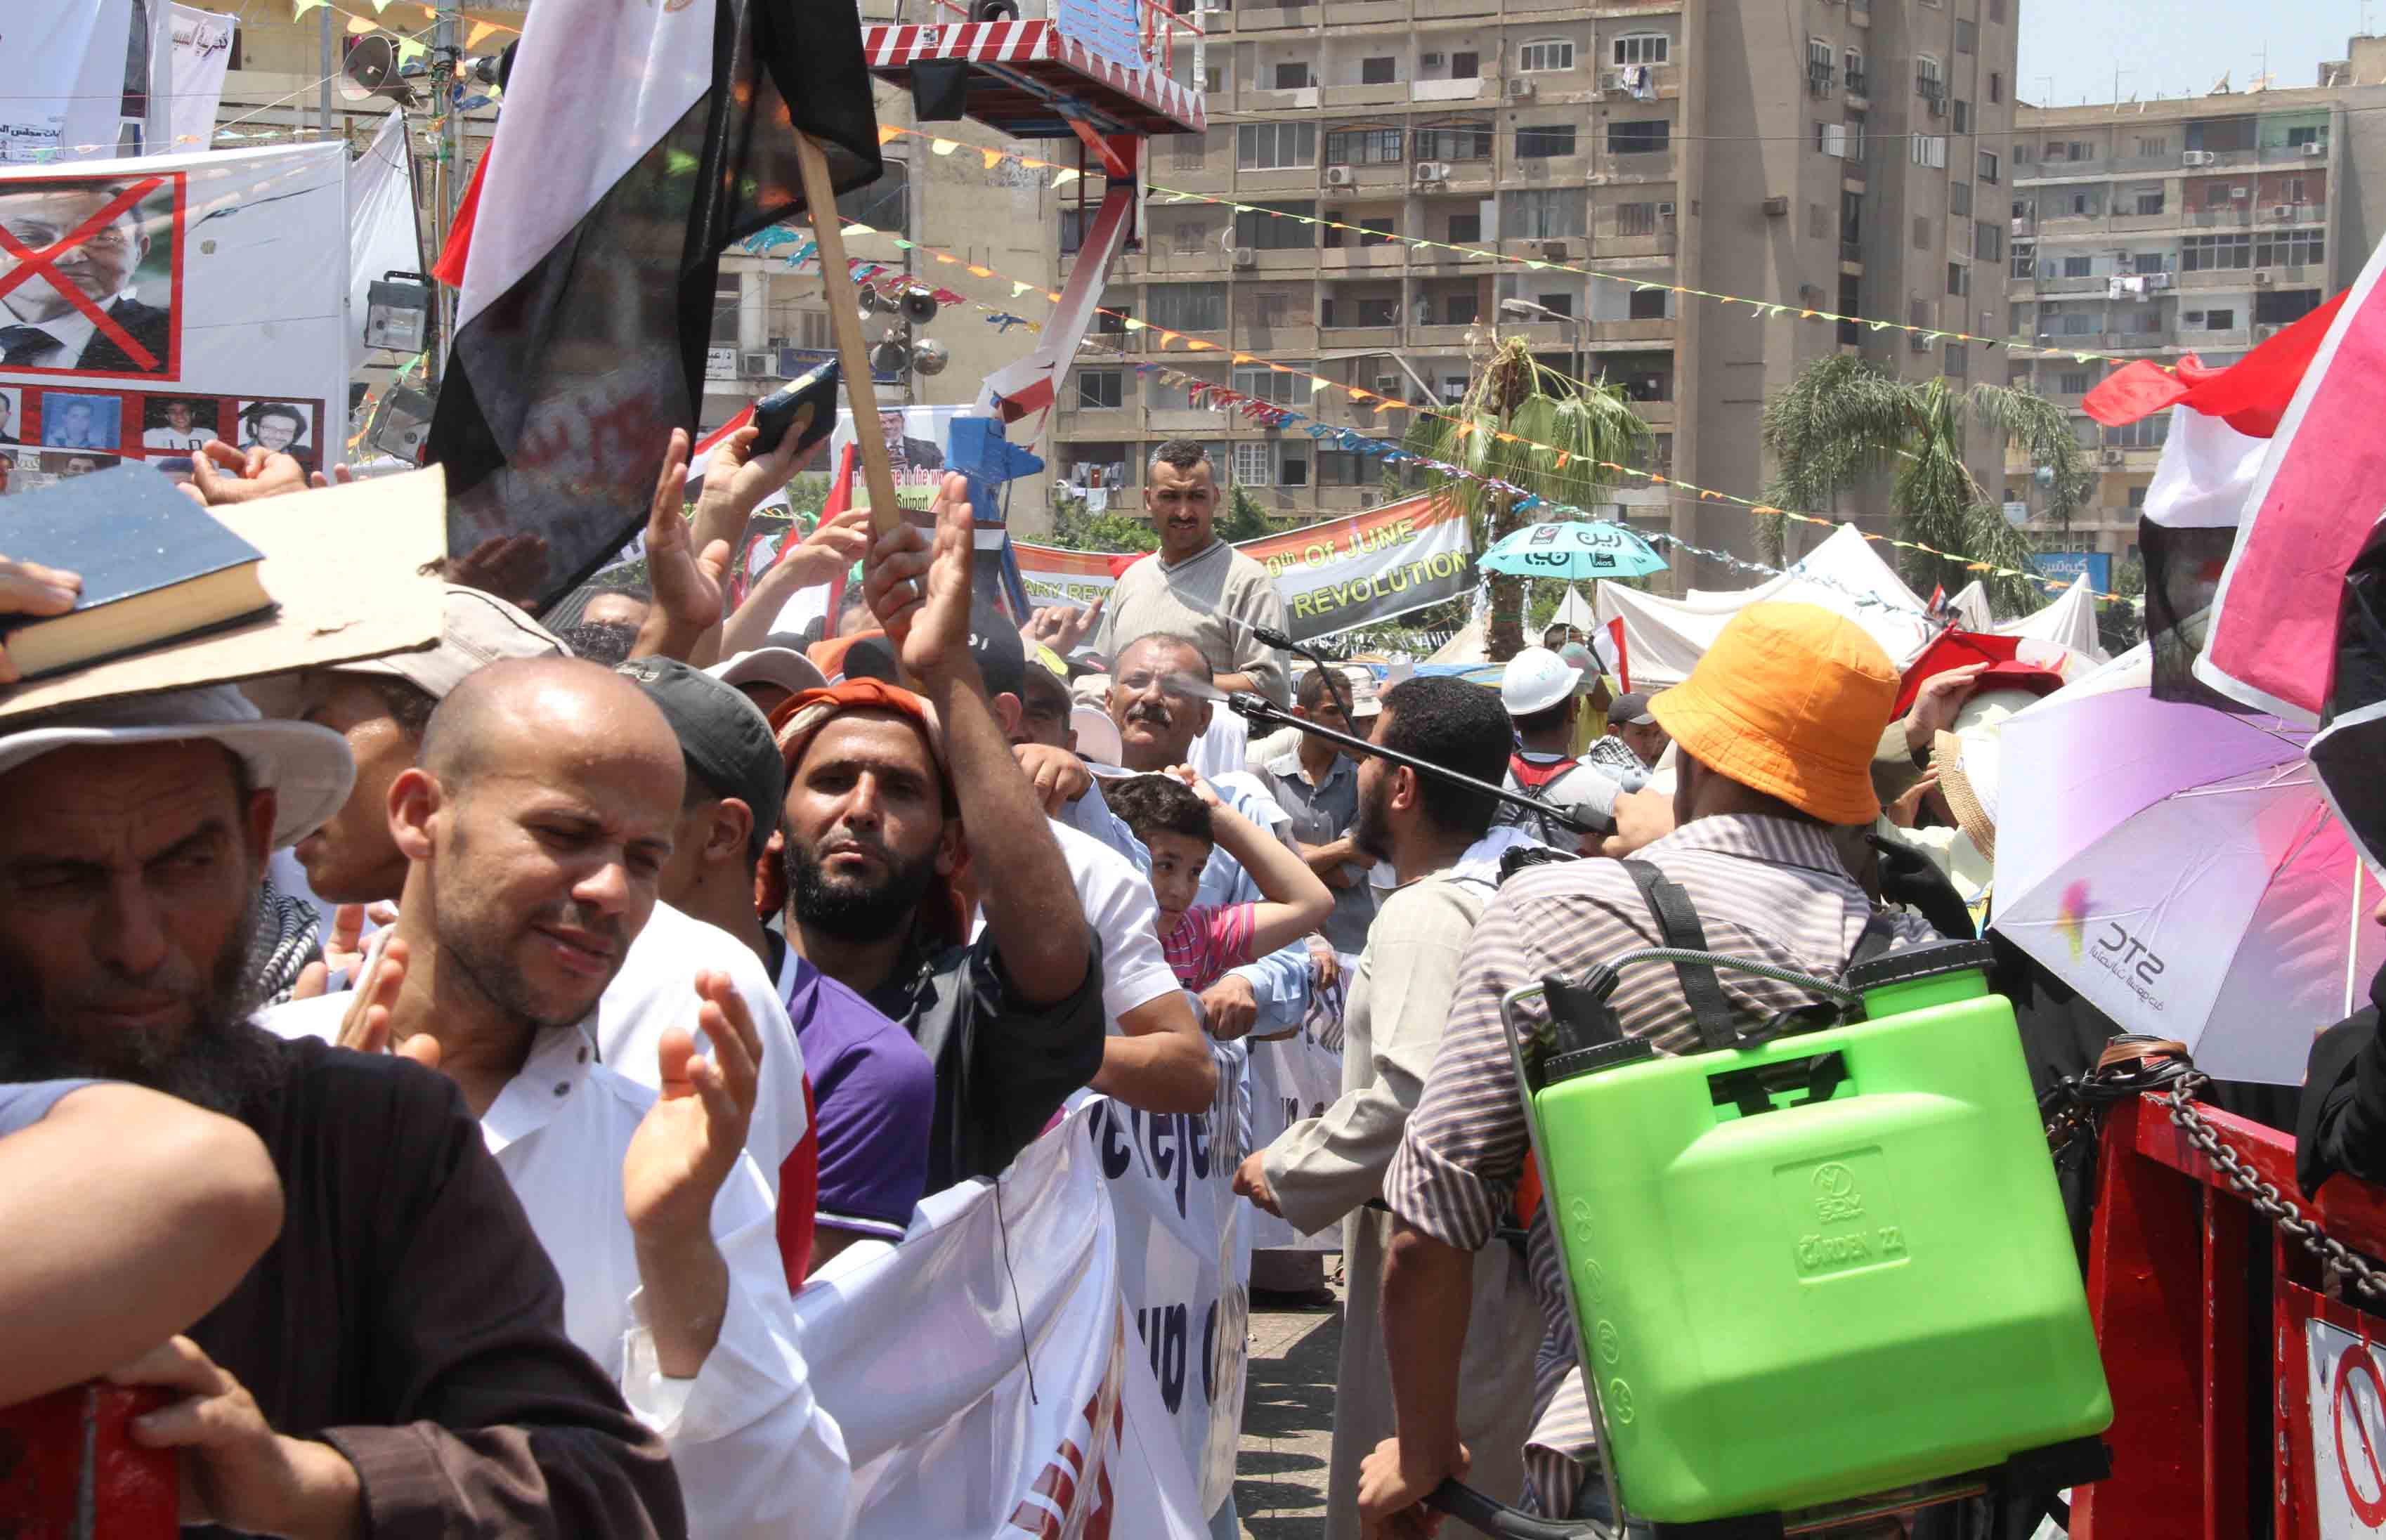 Pro-Morsi sit-in at Rabaa al Adaweya in Nasr City in 18 July 2013 (DNE File Photo)